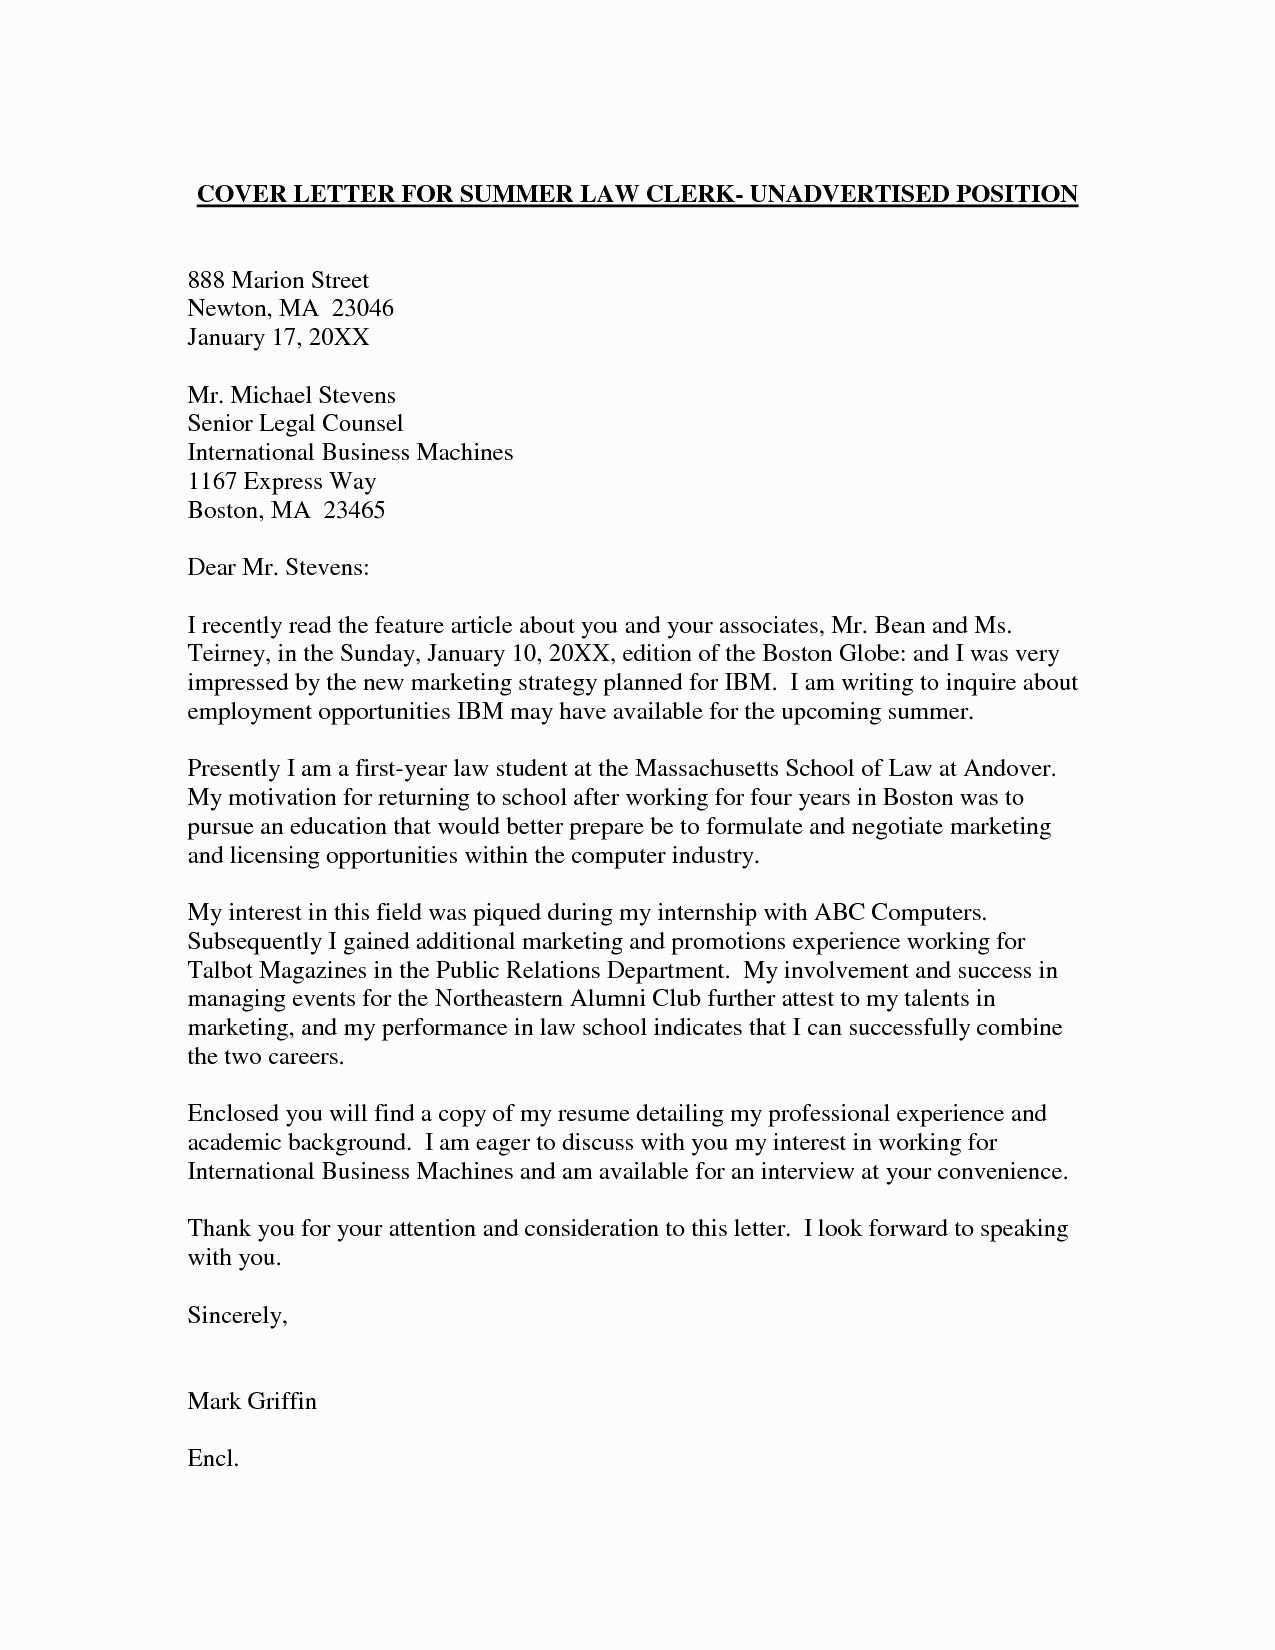 Letters Of Application Examples Beautiful Employment Cover Letter Template Wondercover Letter Job Cover Letter Employment Cover Letter Cover Letter For Resume